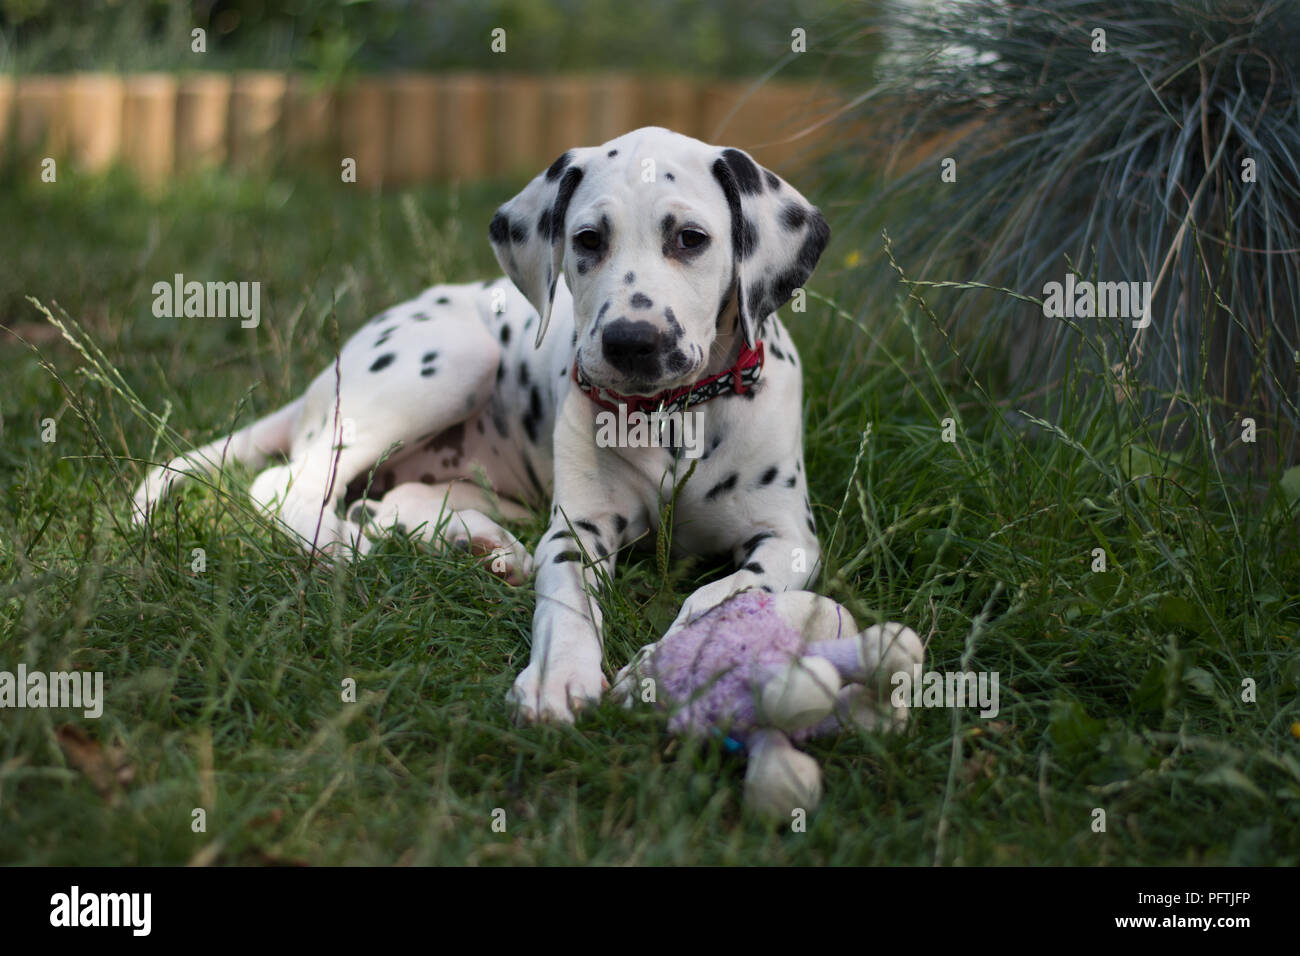 dalmatian puppy lying outside on the grass with puple toy - Stock Image